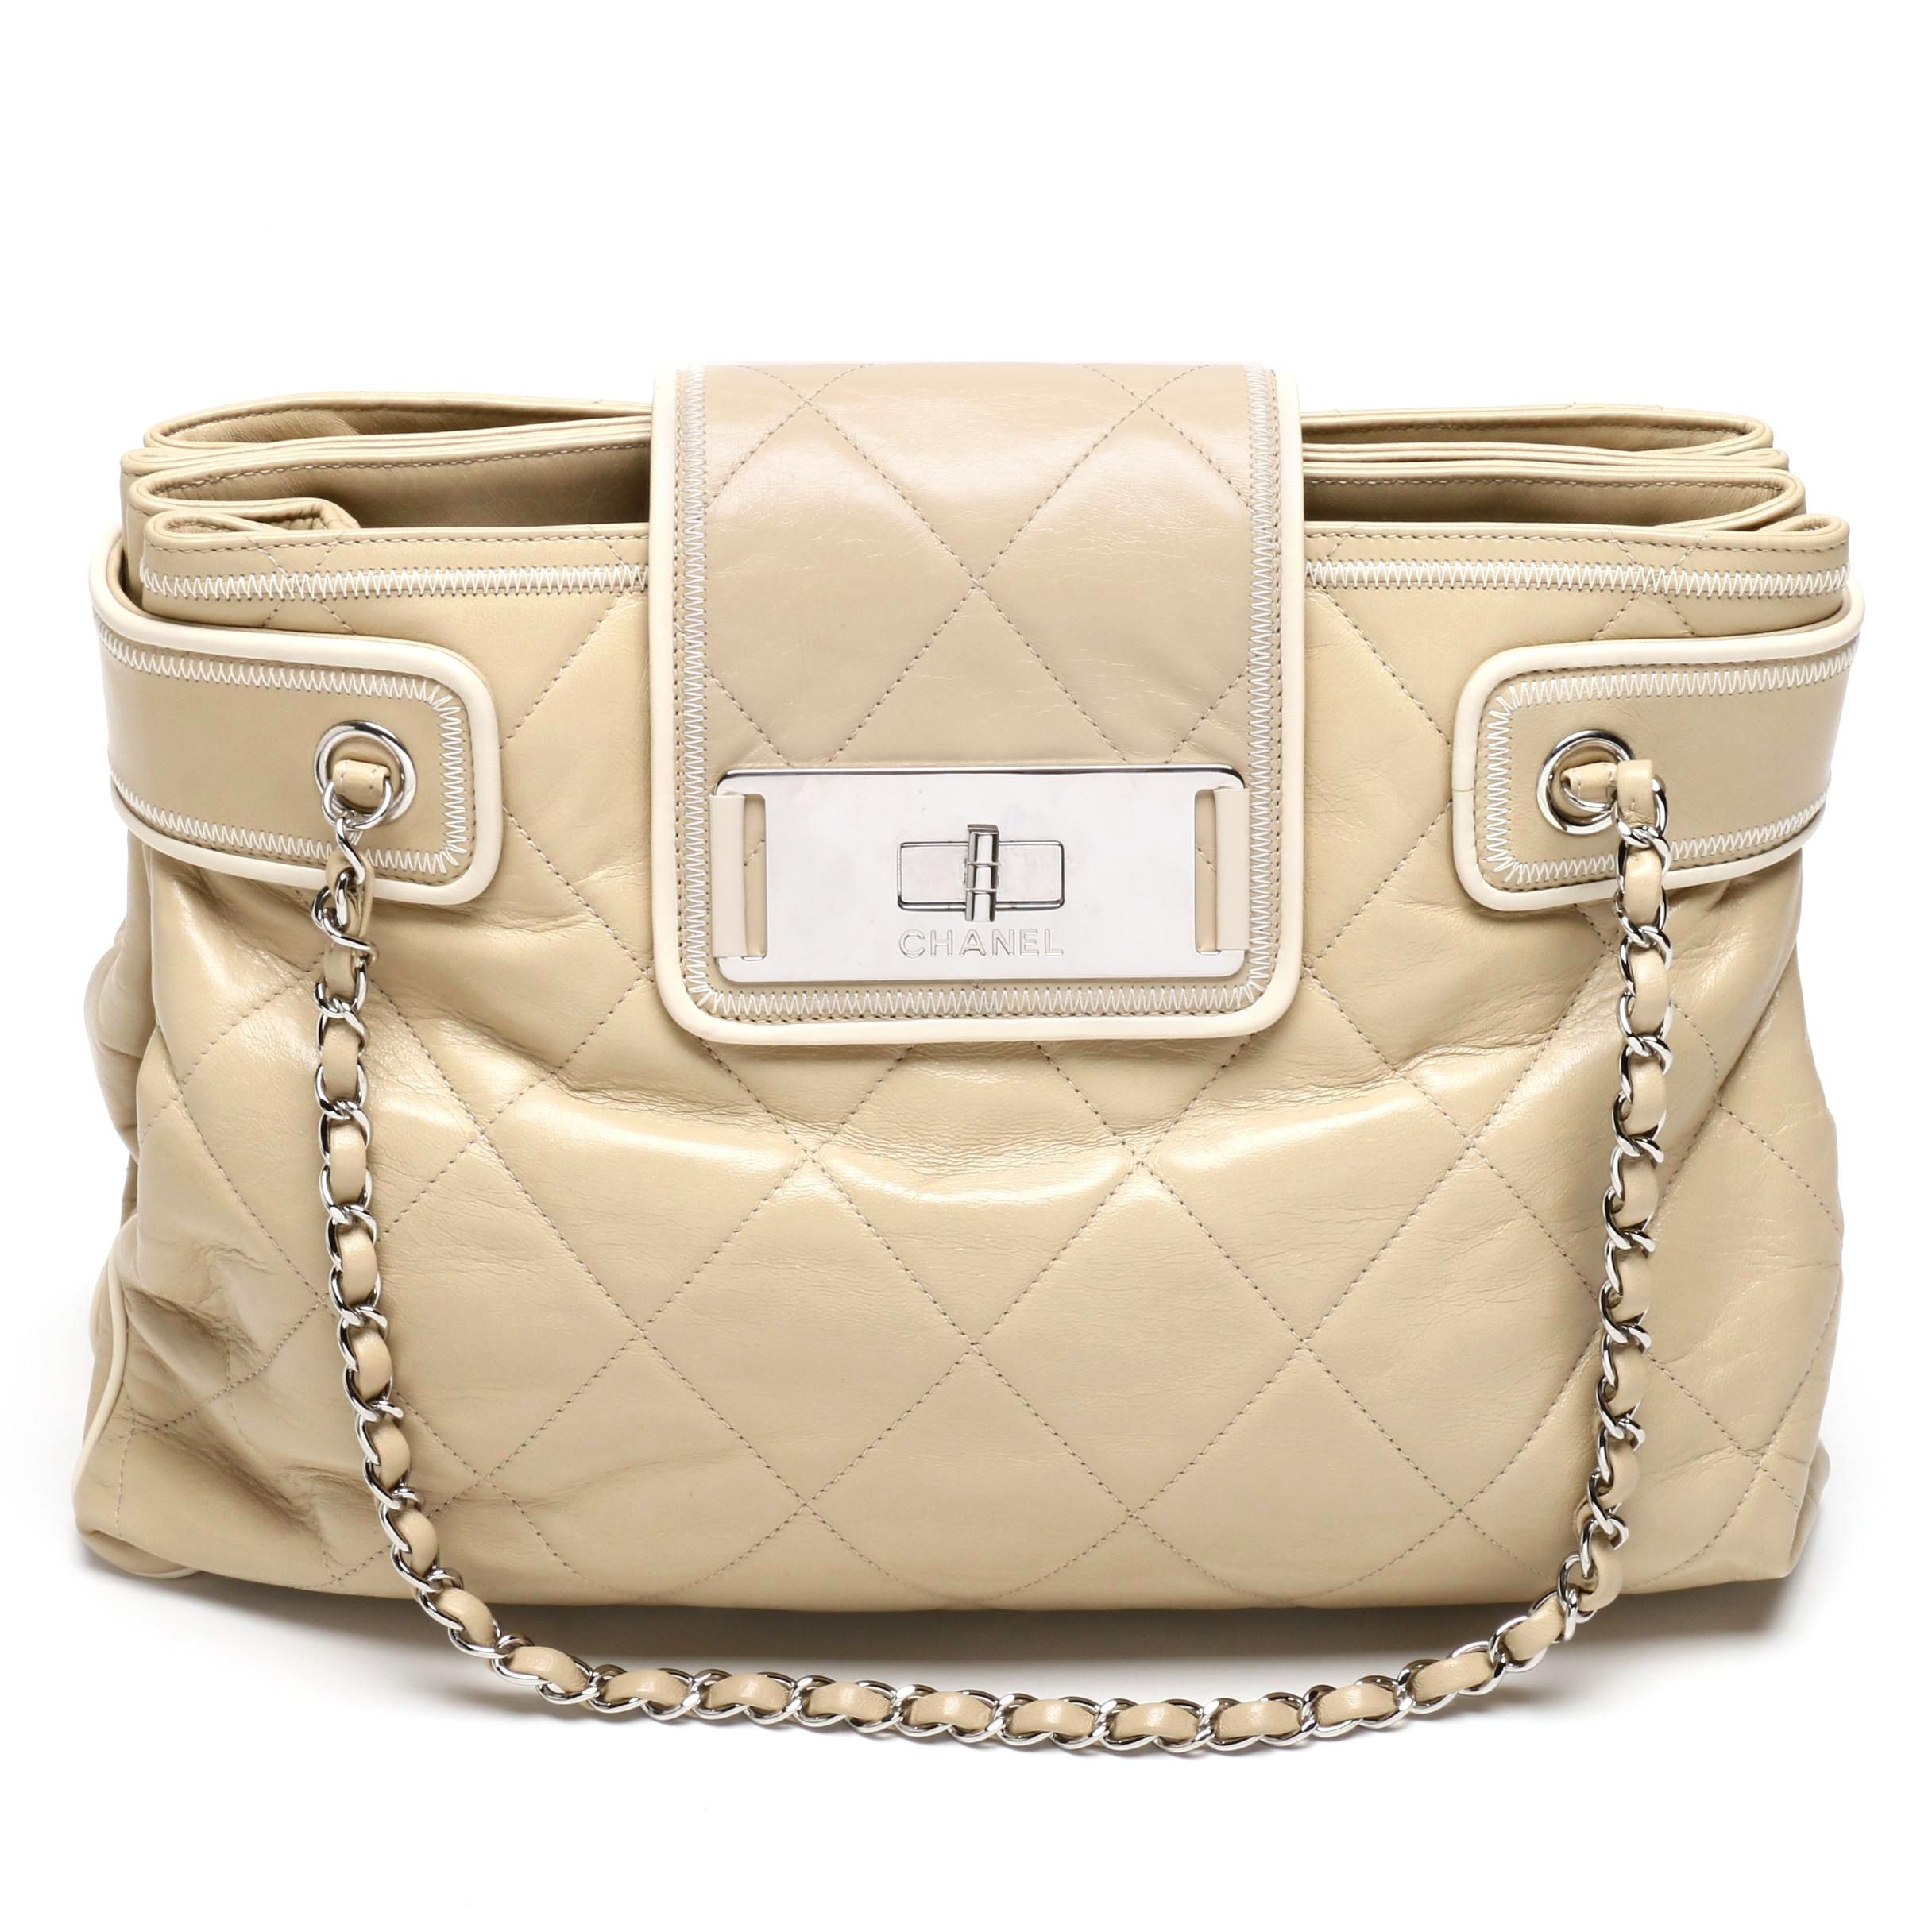 Chanel Beige Quilted Lambskin Leather East West Tote Bag